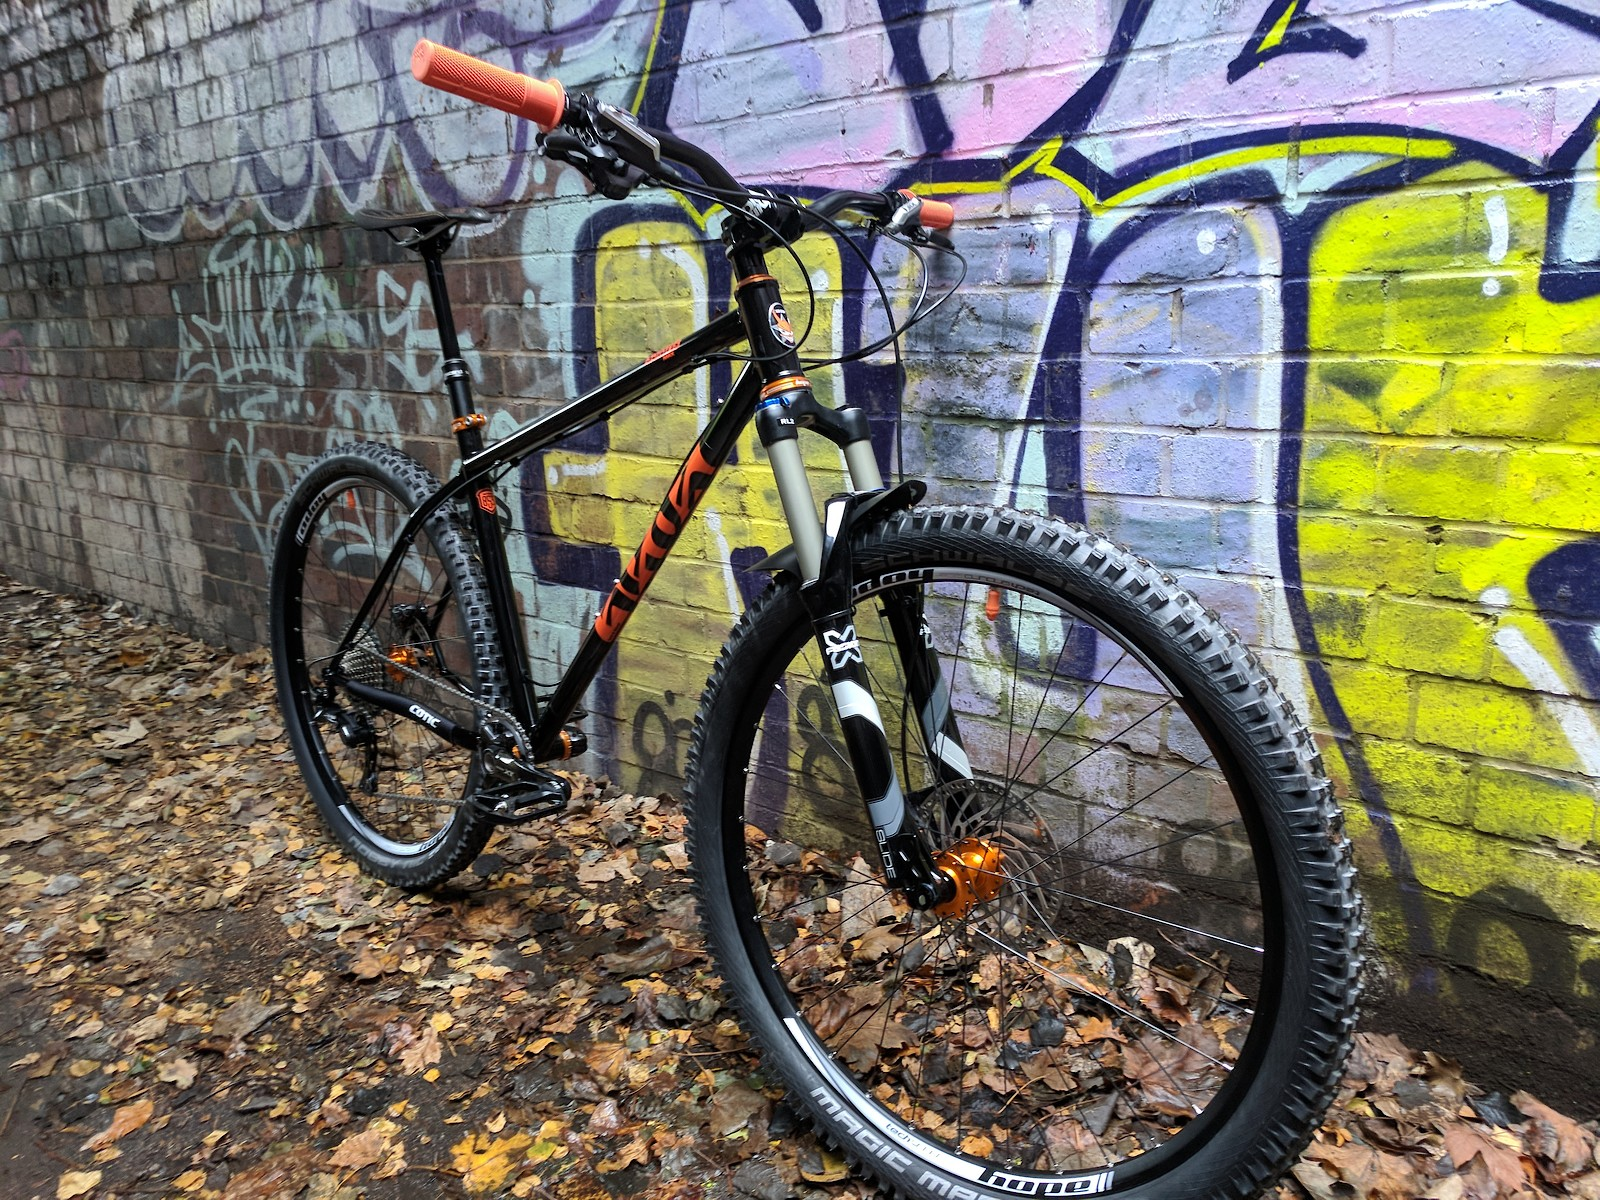 Cotic Solaris Max - my 20th anniversary hardtail